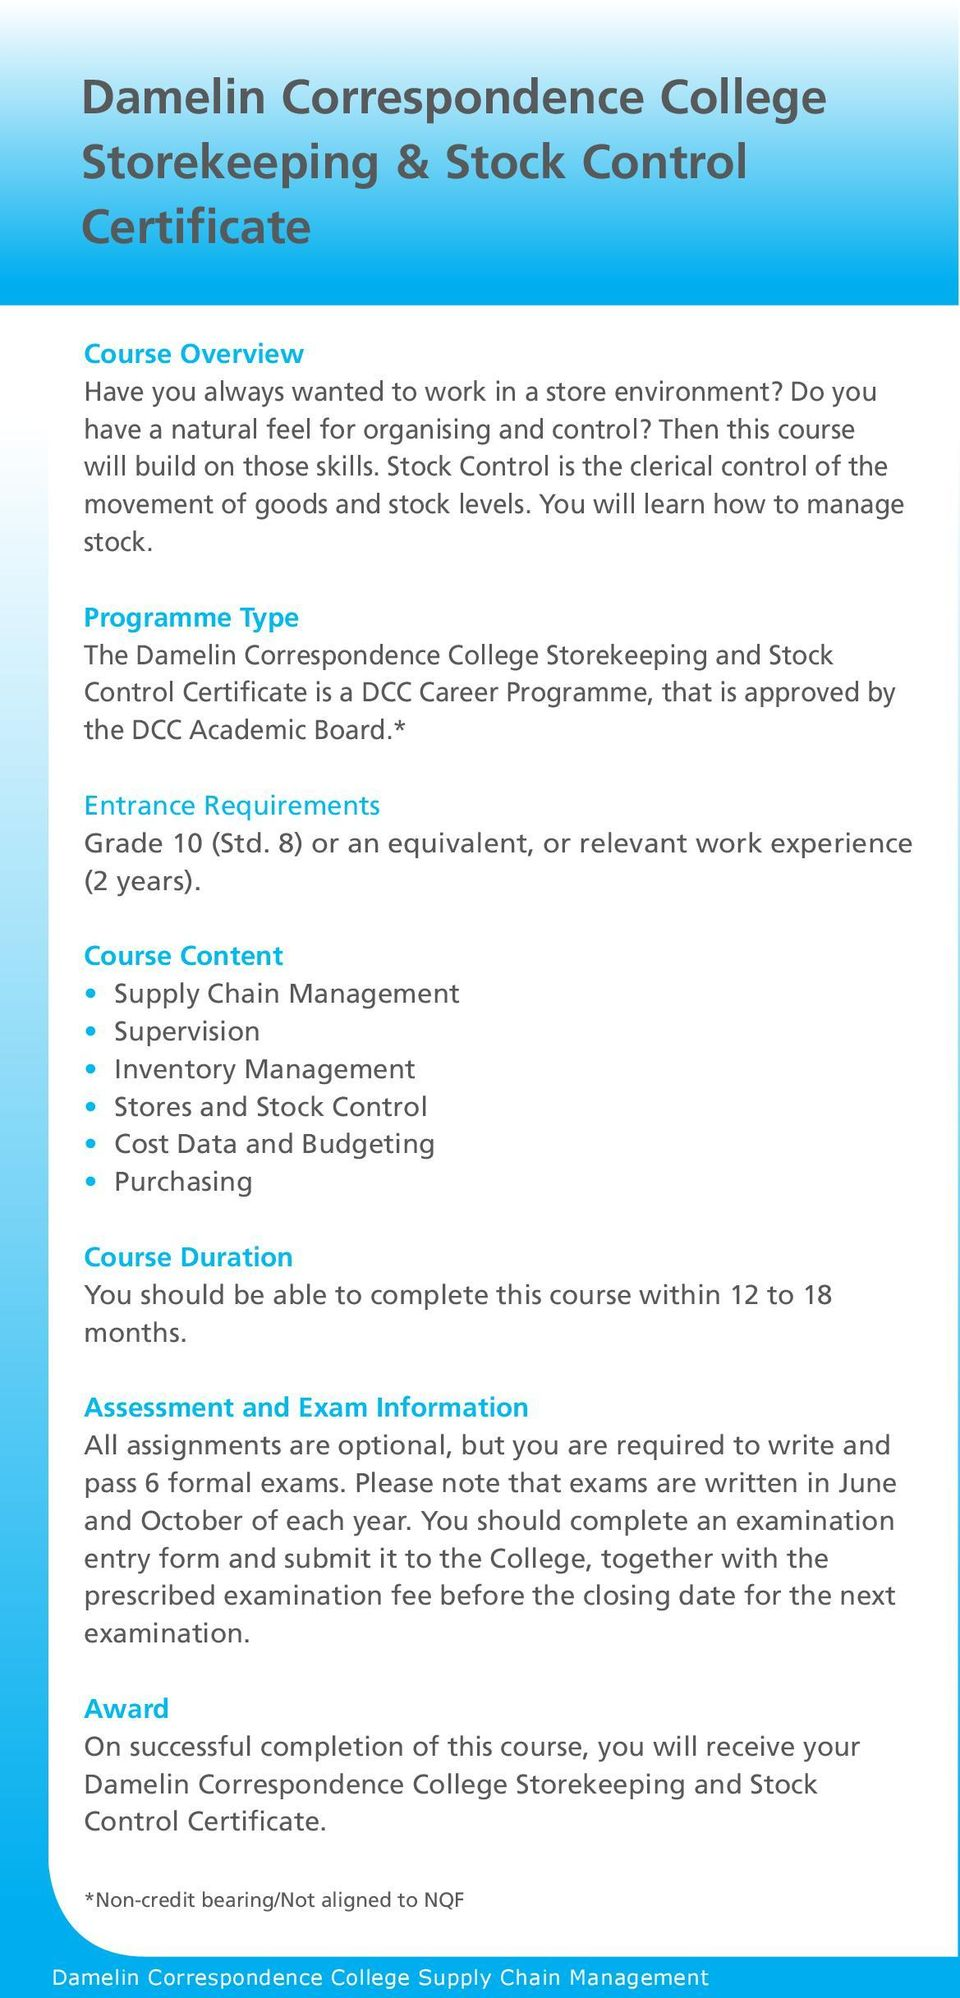 Programme Type The Damelin Correspondence College Storekeeping and Stock Control Certificate is a DCC Career Programme, that is approved by the DCC Academic Board.